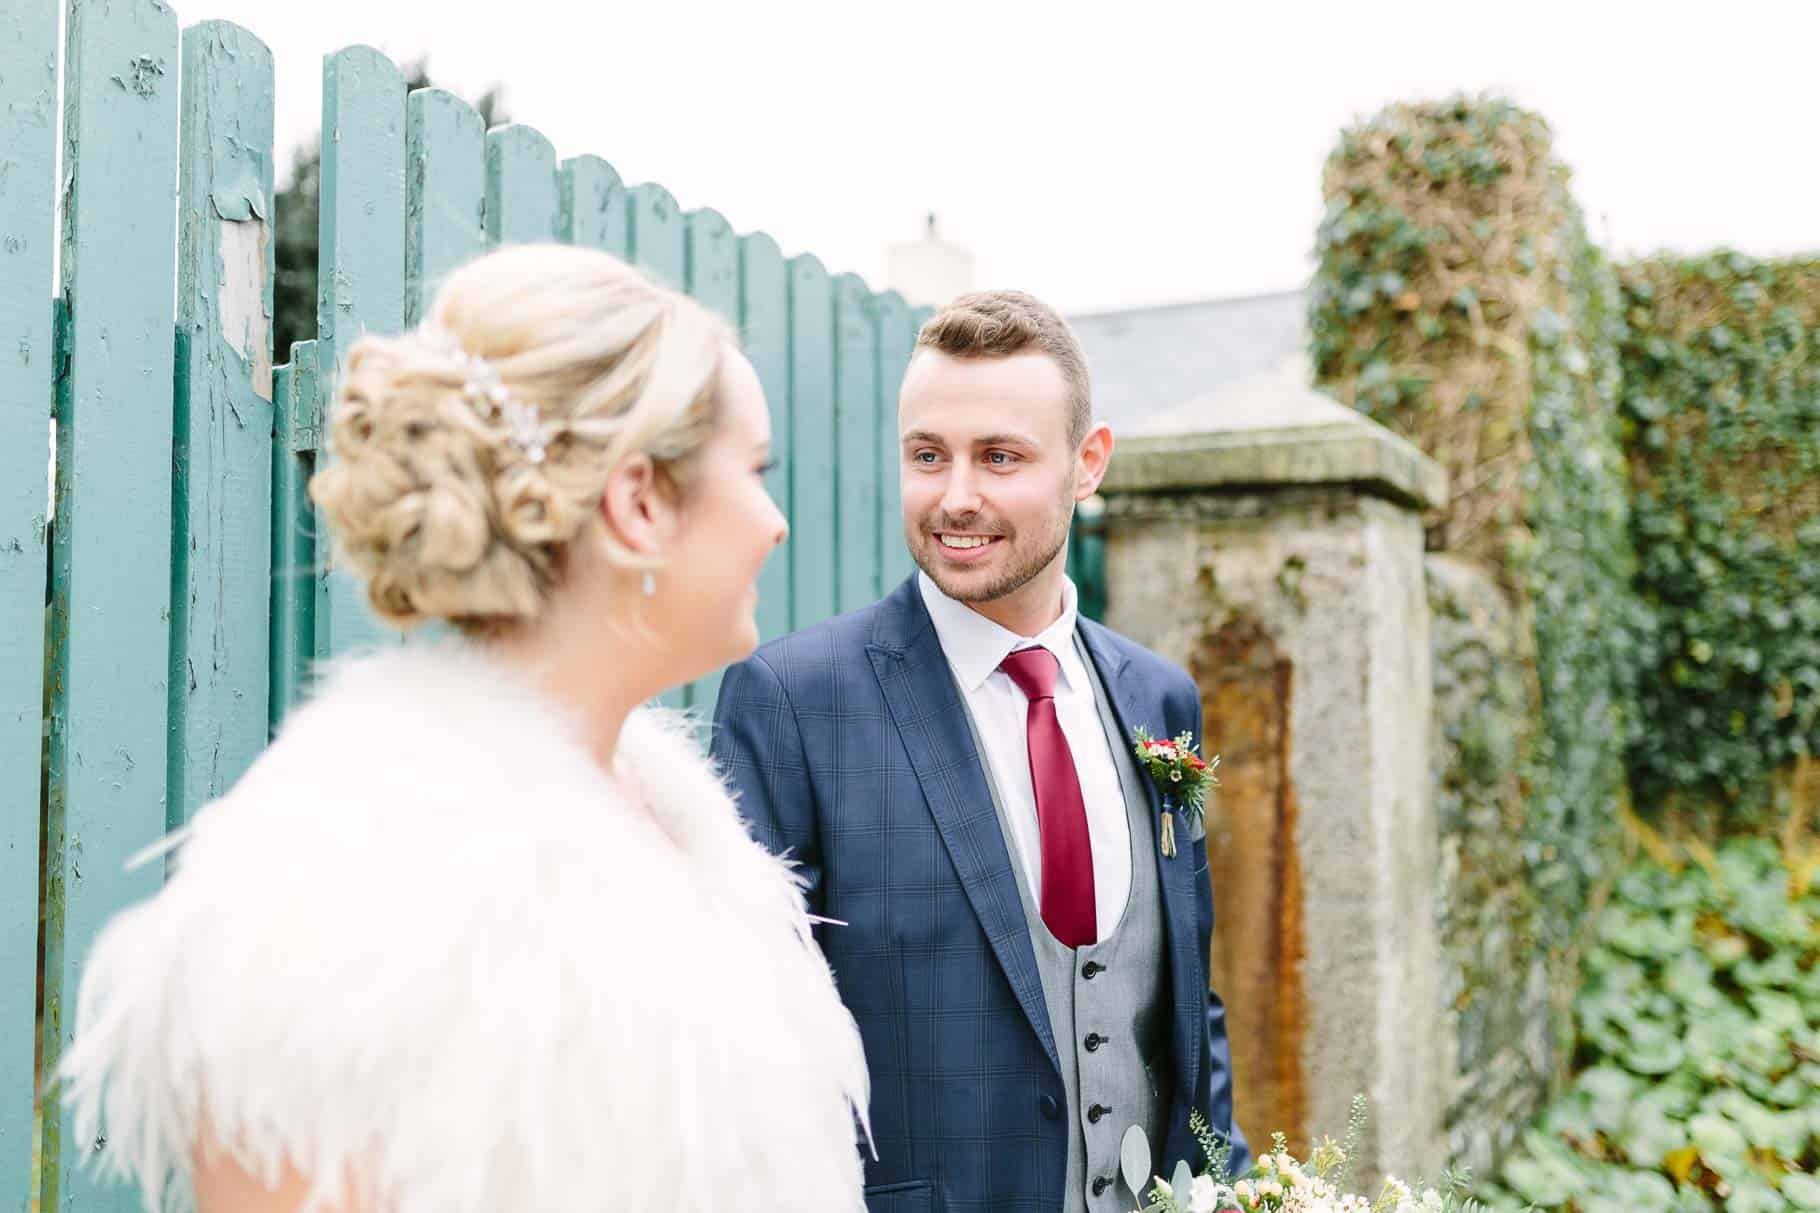 Groom looking at his bride in fromt of an old painted gate